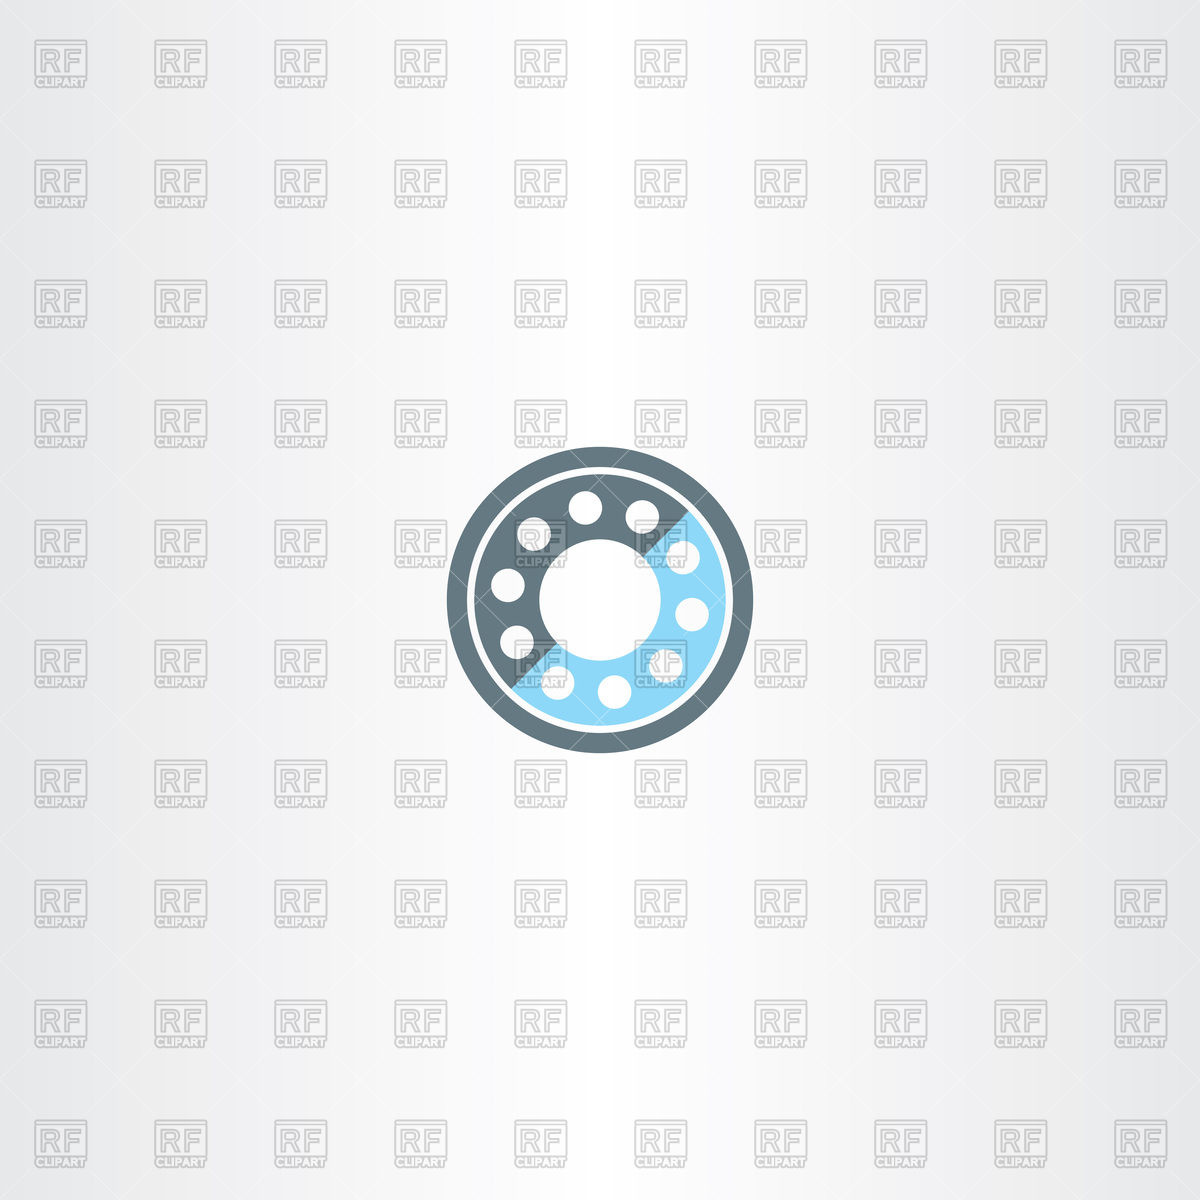 Roller bearing icon Vector Image #124704.